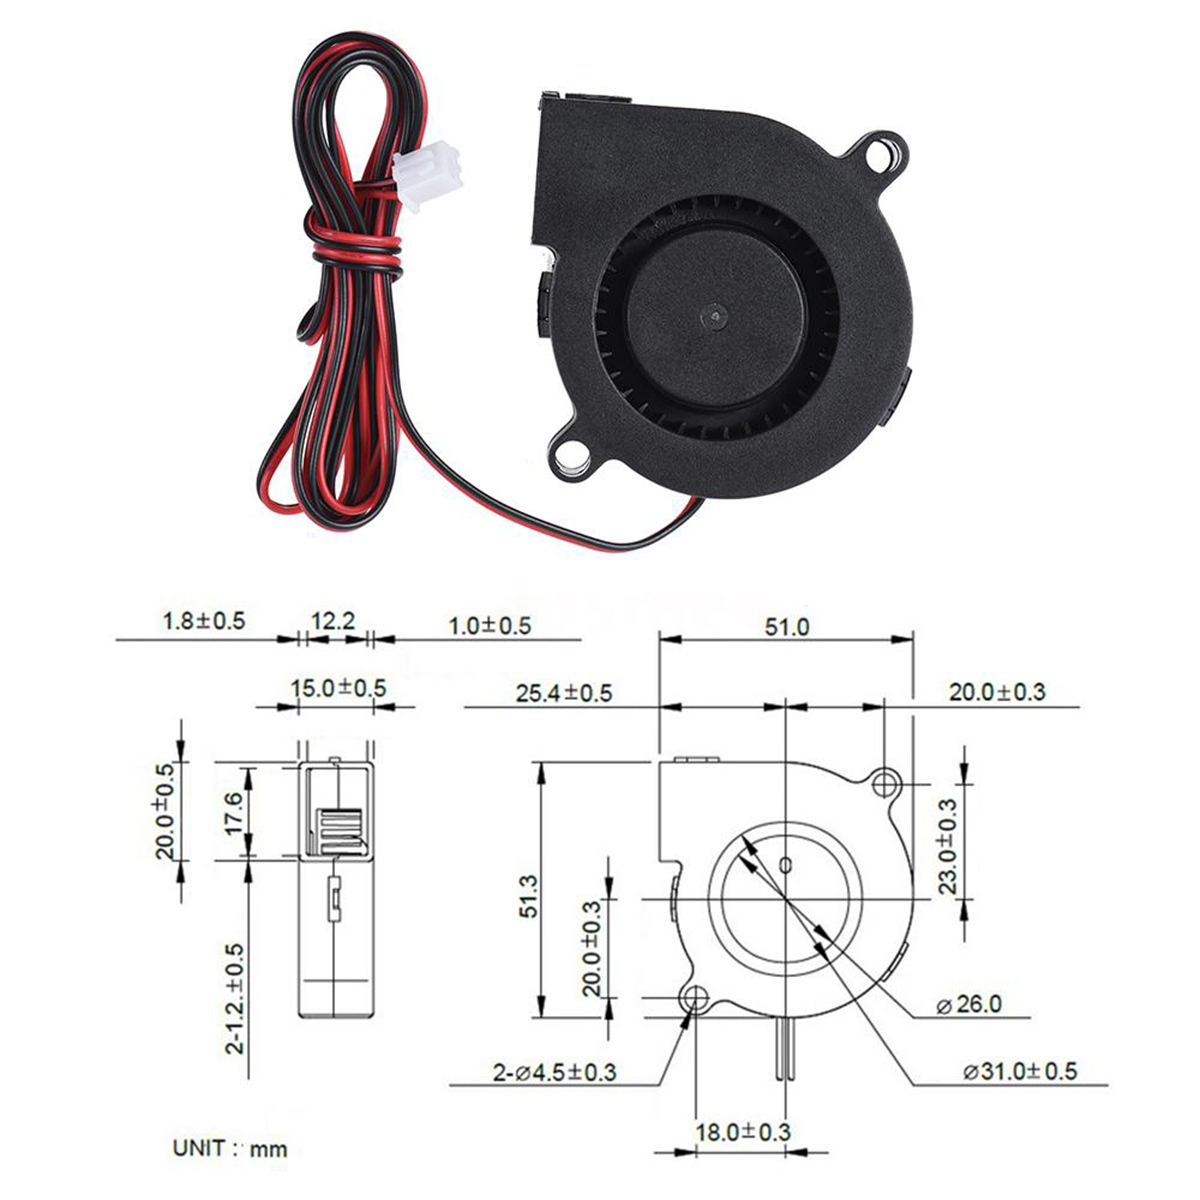 1pc DC Radial Cooling Fan 12V/24V Hot End Extruder Blow Fans 50*15mm Mayitr For 3D Printer Parts computador cooling fan replacement for msi twin frozr ii r7770 hd 7770 n460 n560 gtx graphics video card fans pld08010s12hh